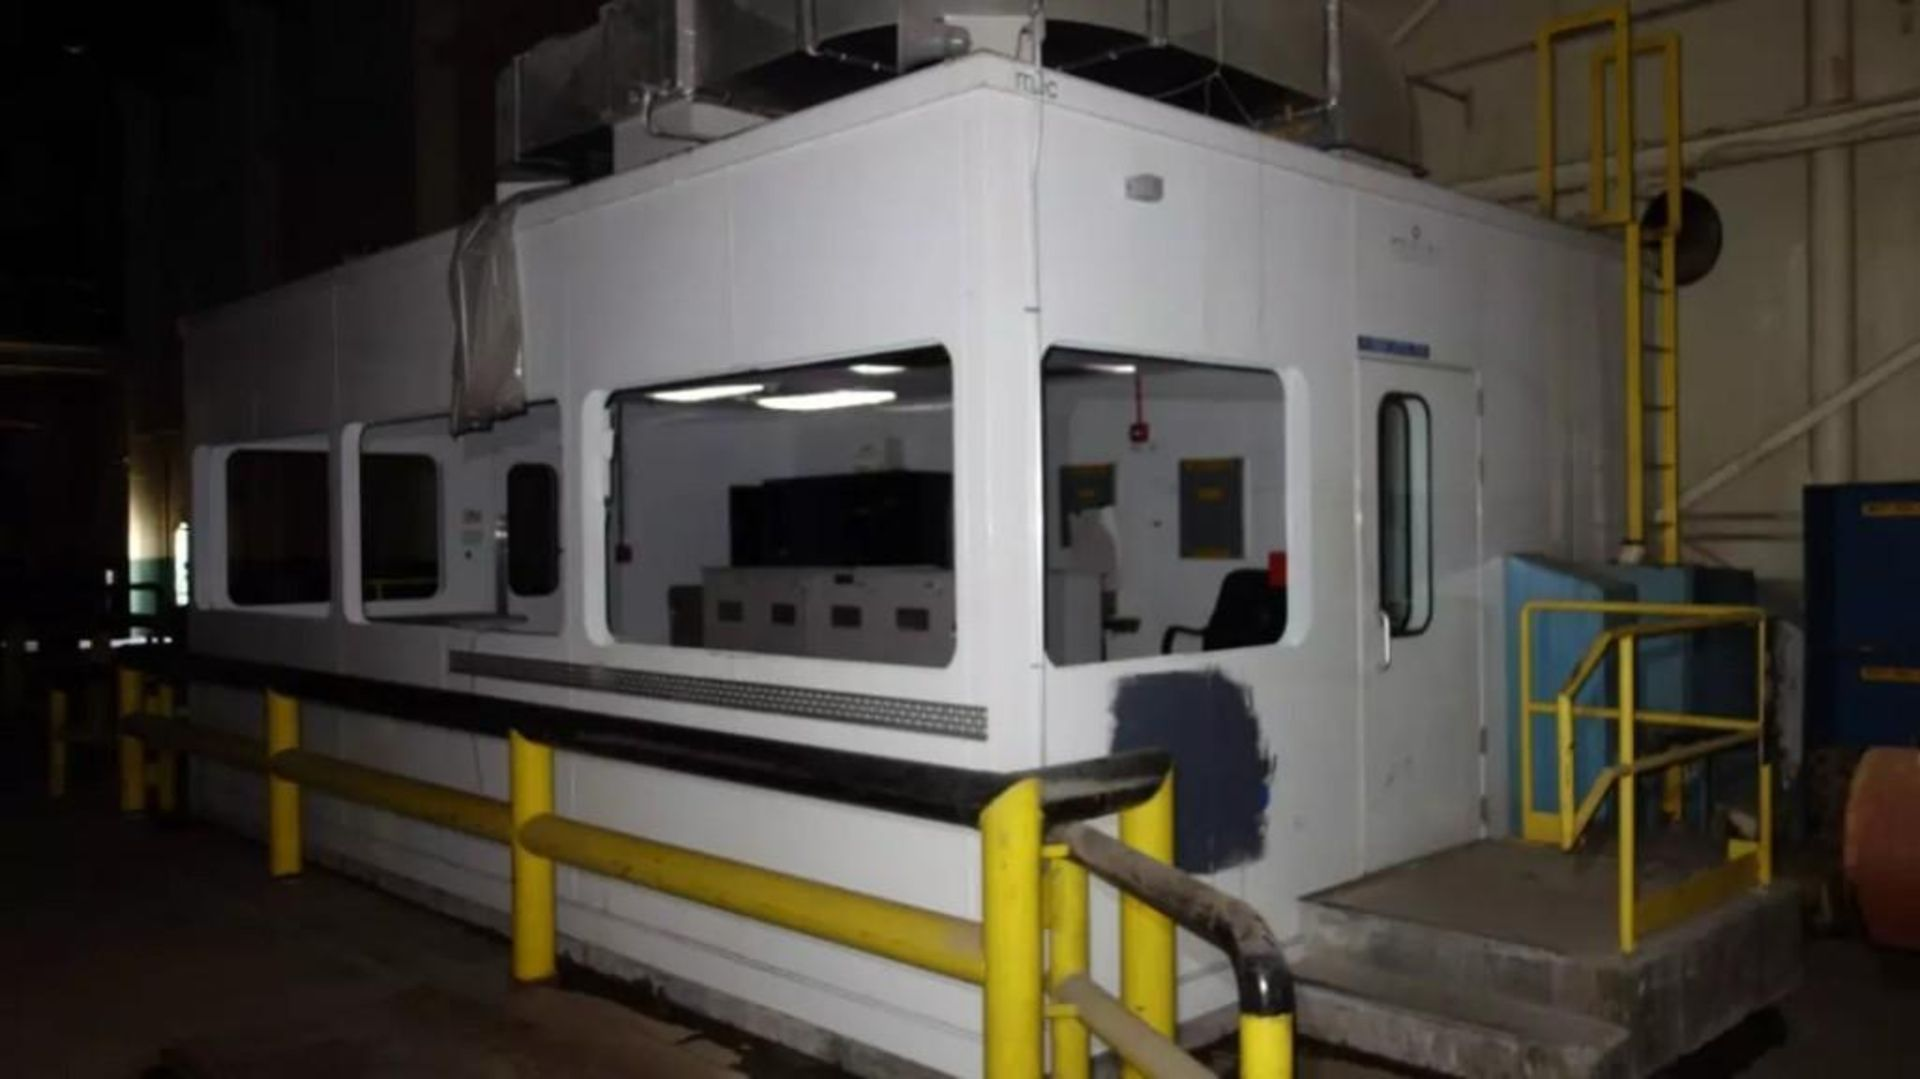 PREFABRICATED MODULAR OFFICE MECART COMMAND CENTER OFFICE WITH CONTENTS, 25X18FT (MISSING WINDOWS) - Image 5 of 11